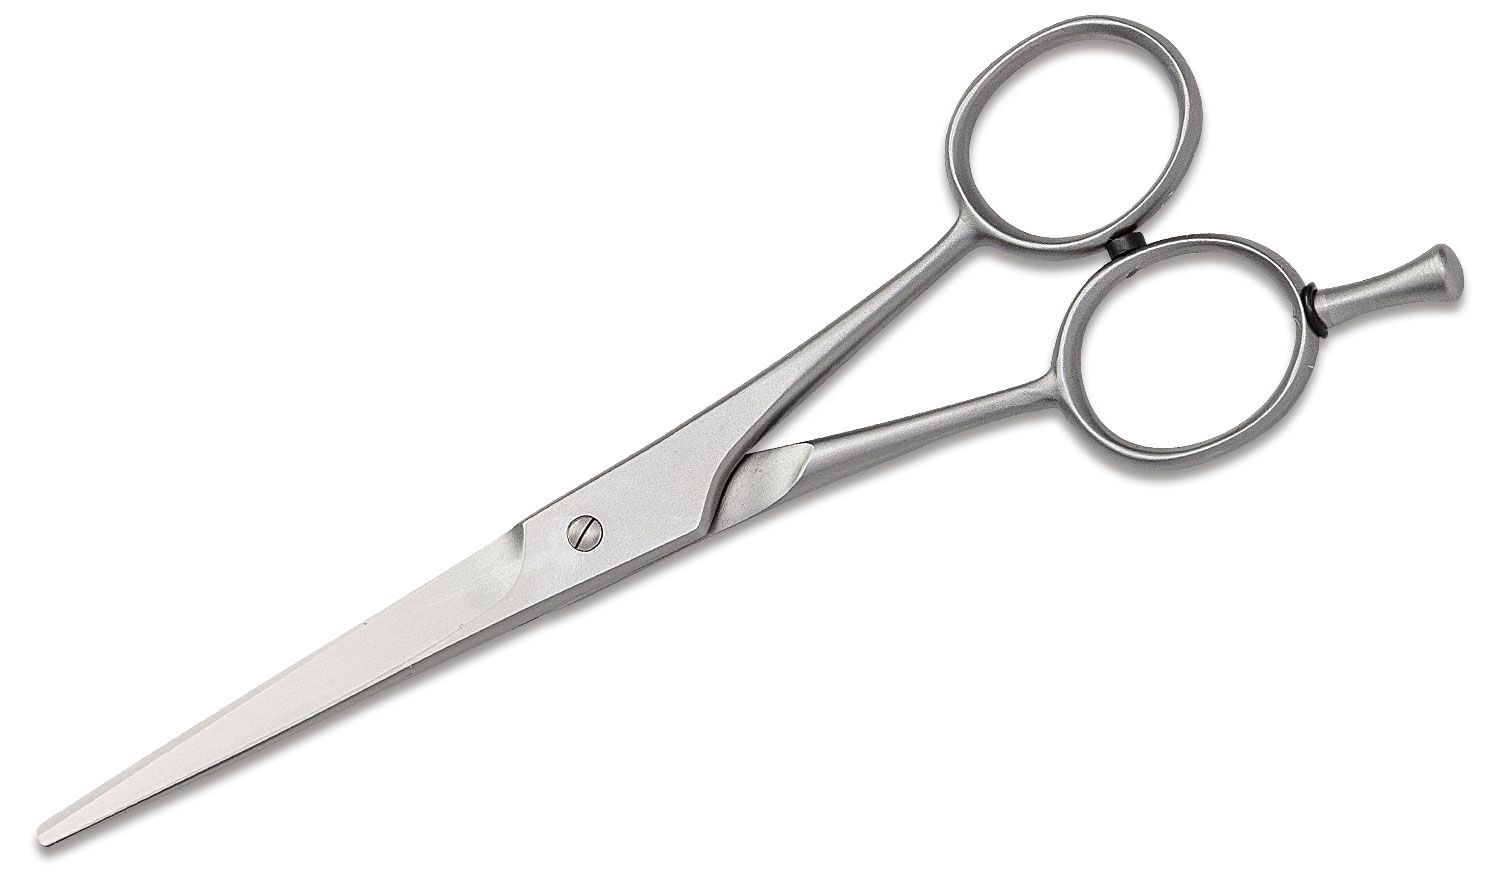 DOVO Hair Scissors 5-1/2 inch Overall